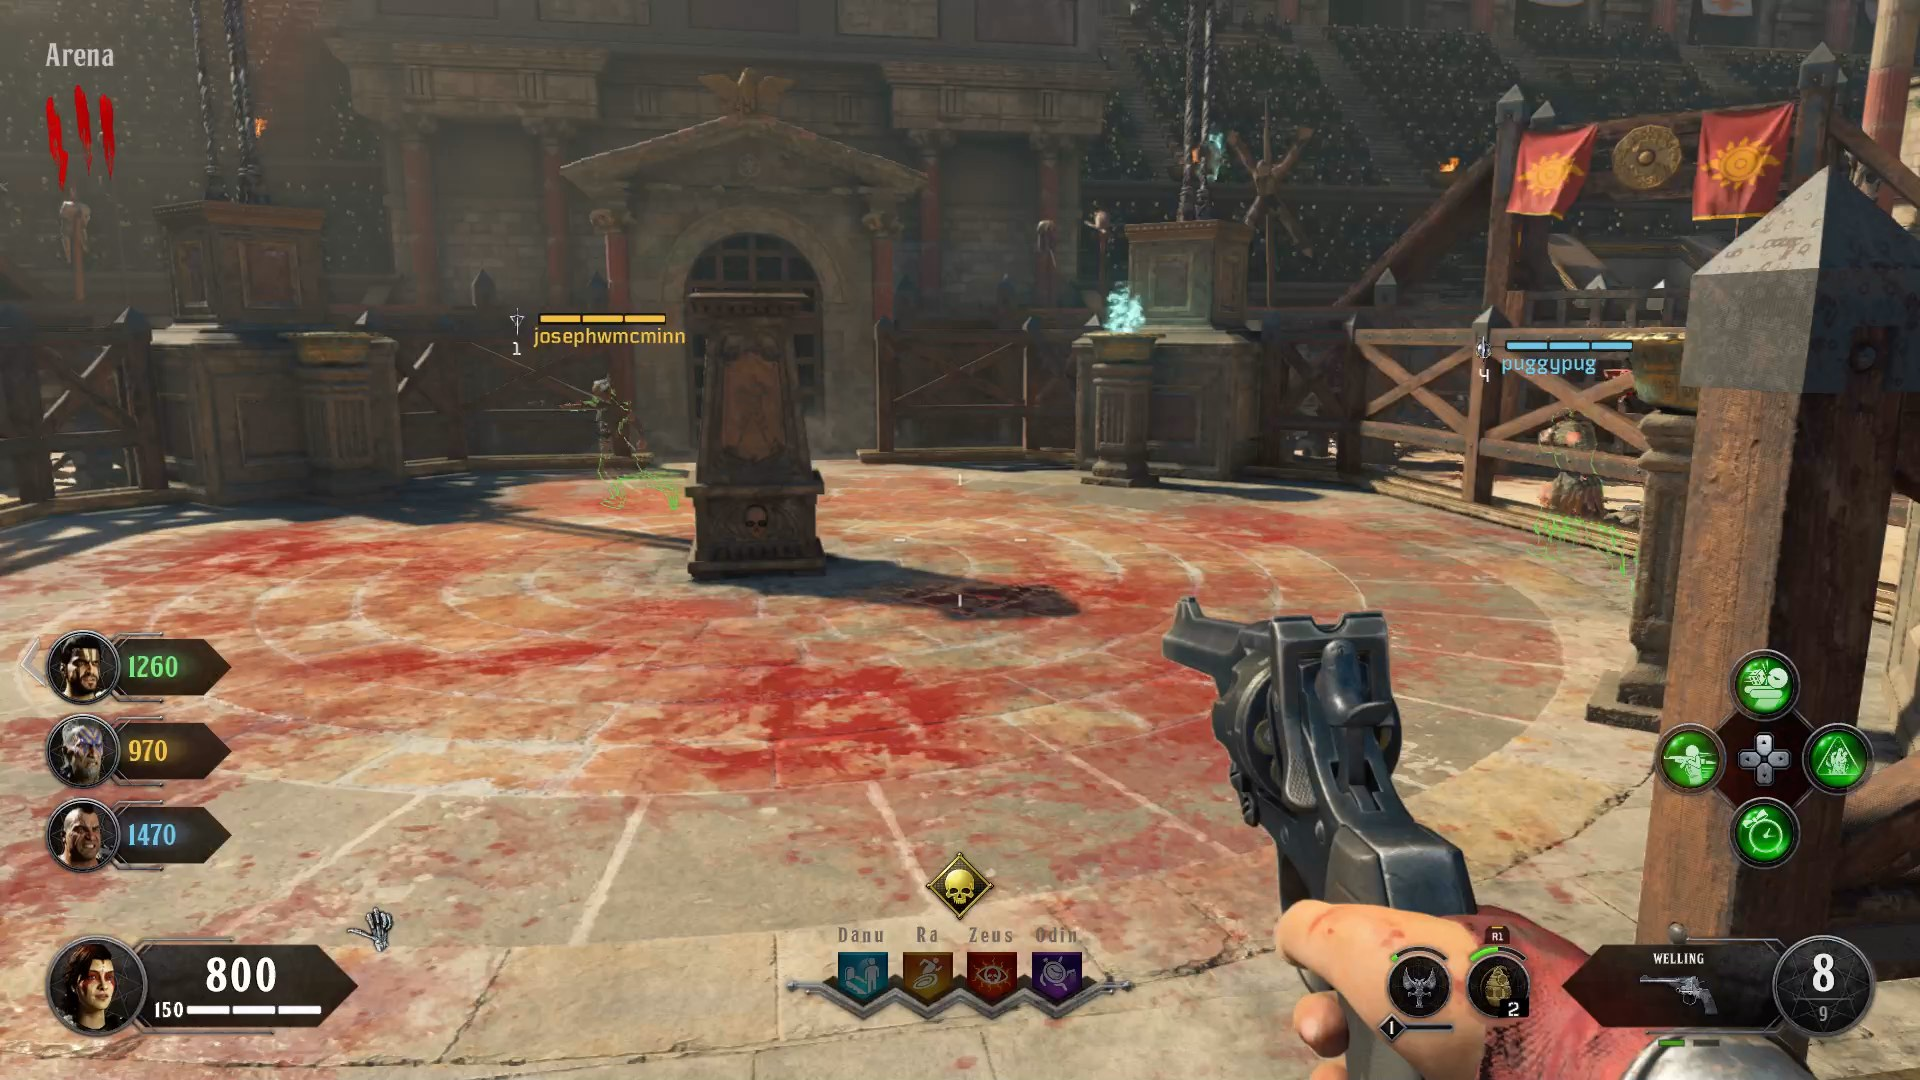 Black Ops 4 Zombies IX Mystery Box Location - Where is the ... on call of duty: black ops ii, call of duty: world at war, call of duty game maps, call of duty 3, call of duty elite, call of duty 2, call of duty zombies minecraft server, call of duty wallpaper, call of duty zombies movie, call of duty ghosts world map, call of duty president, call of duty modern warfare 3, small call of duty maps, call of duty mw maps, gears of war, red dead redemption, call of duty: modern warfare 3, call of duty zombie hospital, call of duty zombies anime, call of duty ghosts zombies, call of duty zombies map packs, call of duty modern warfare 2, call of duty ghosts extinction maps, medal of honor, grand theft auto, call of duty zombies all characters, call duty black ops 2 zombies buried, batman: arkham city, cod bo1 zombies maps, halo: reach, call of duty: modern warfare 2, call of duty 4: modern warfare, call of duty nacht der untoten map,